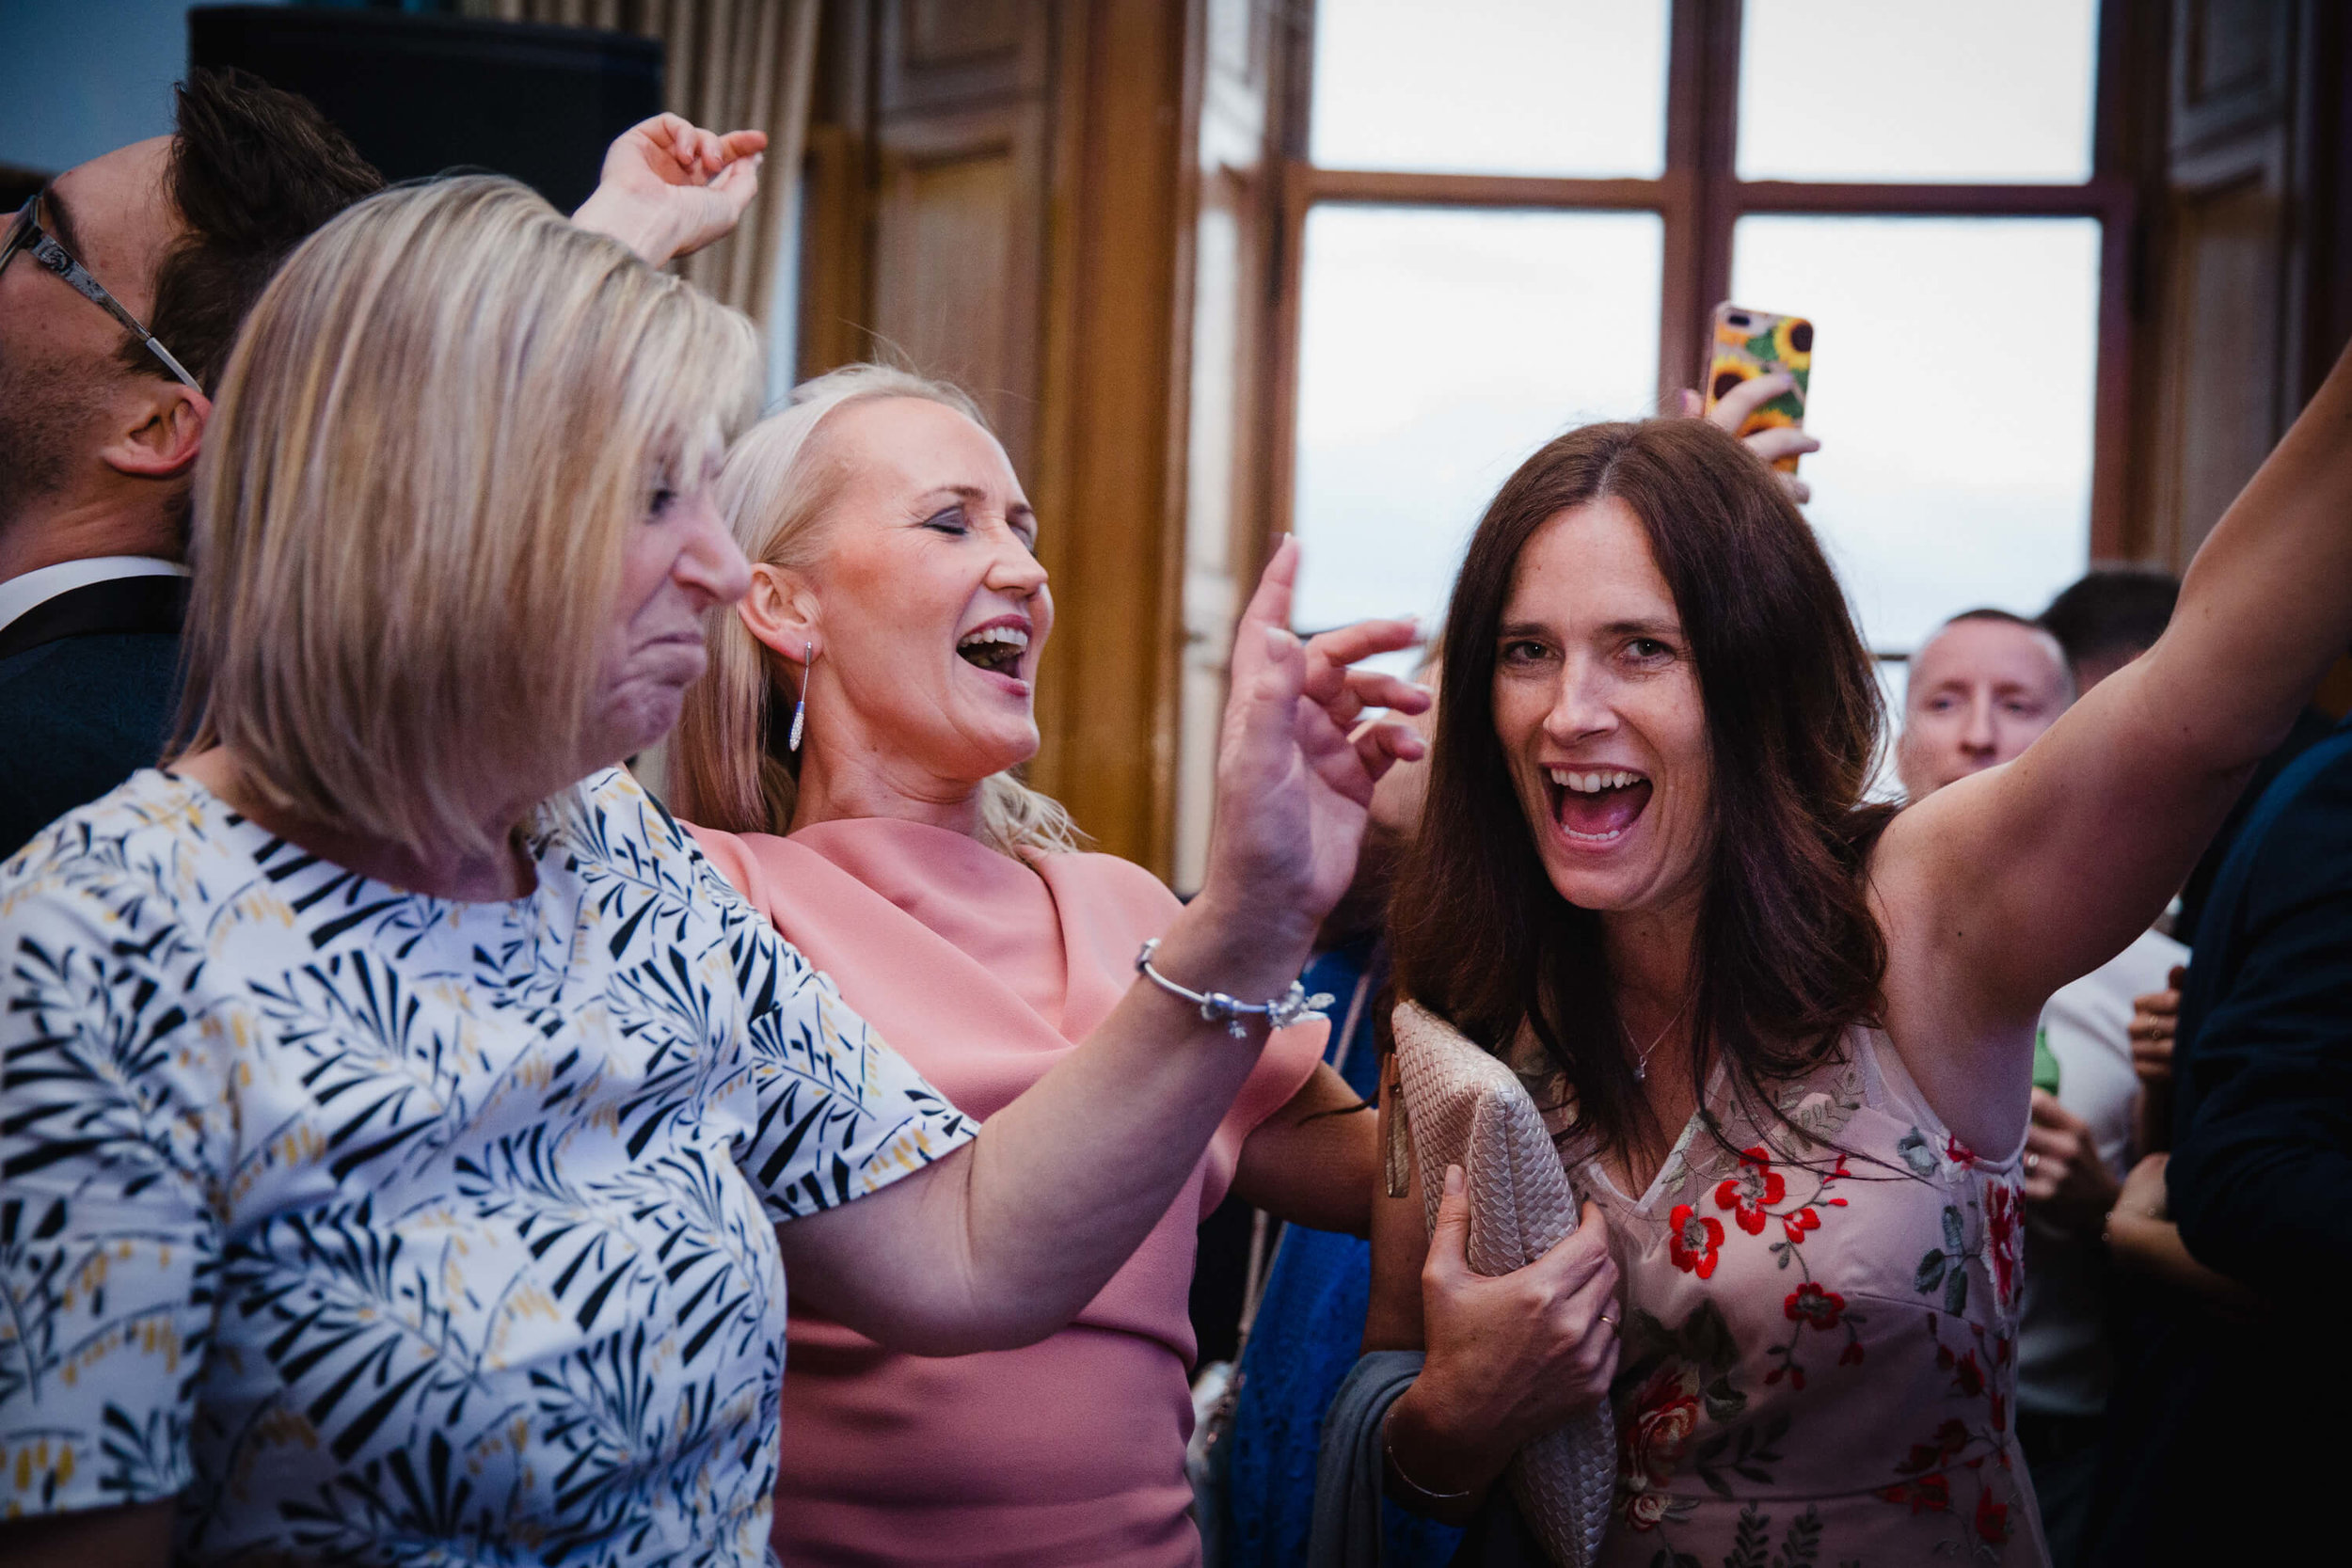 wedding guests dance and party to music at haigh hall